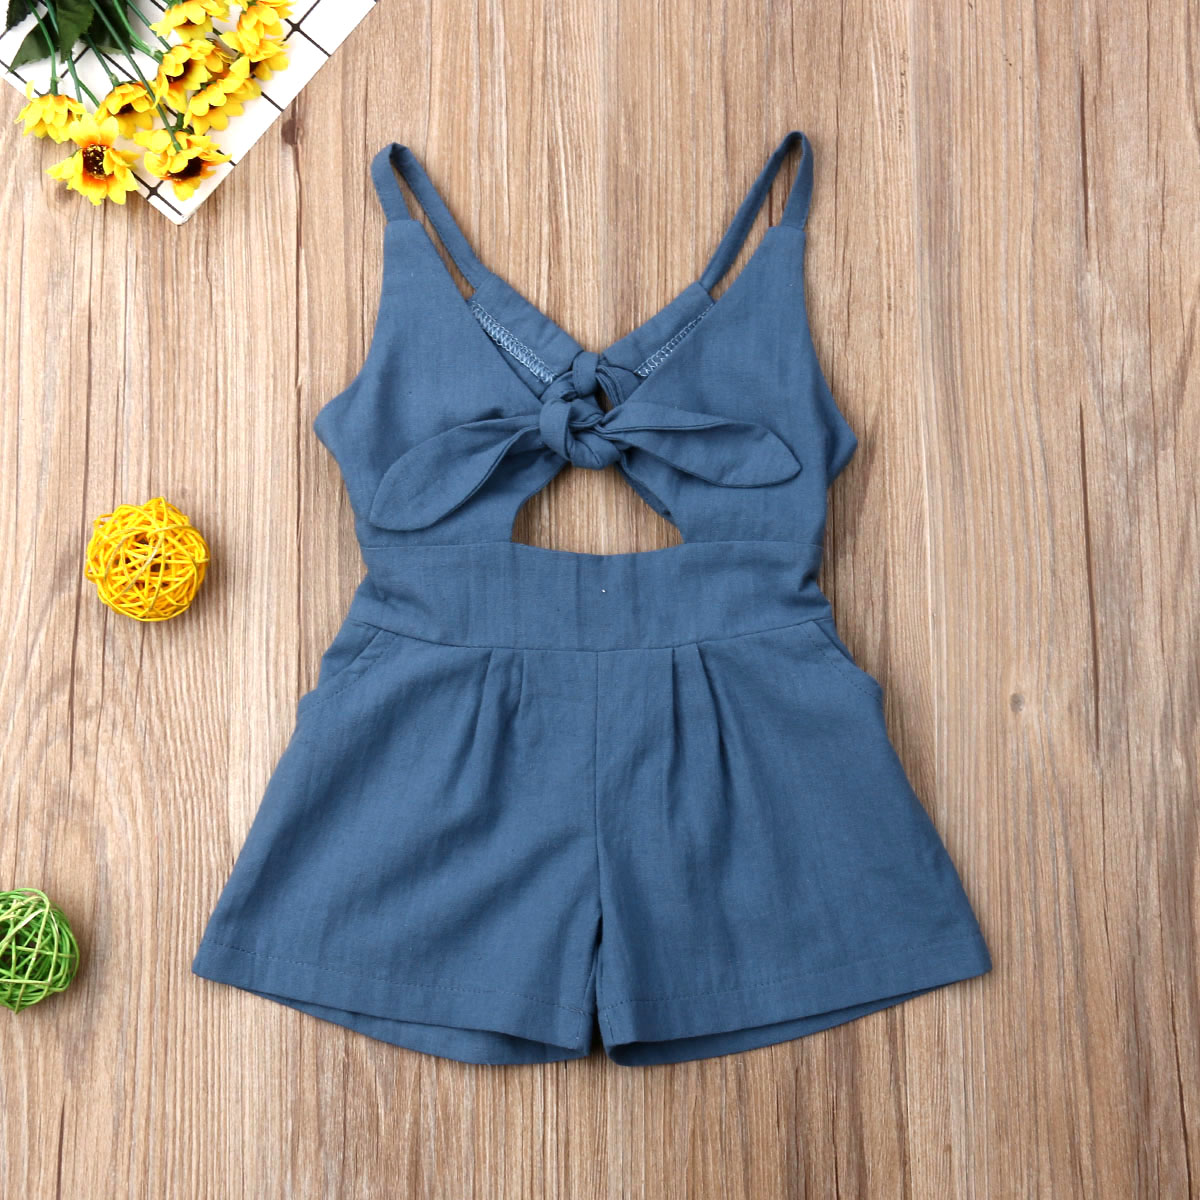 Emmababy Newest Fashion Toddler Baby Girl Clothes Cotton Sleeveless Solid Color Strap Romper One-Piece Outfit Clothes